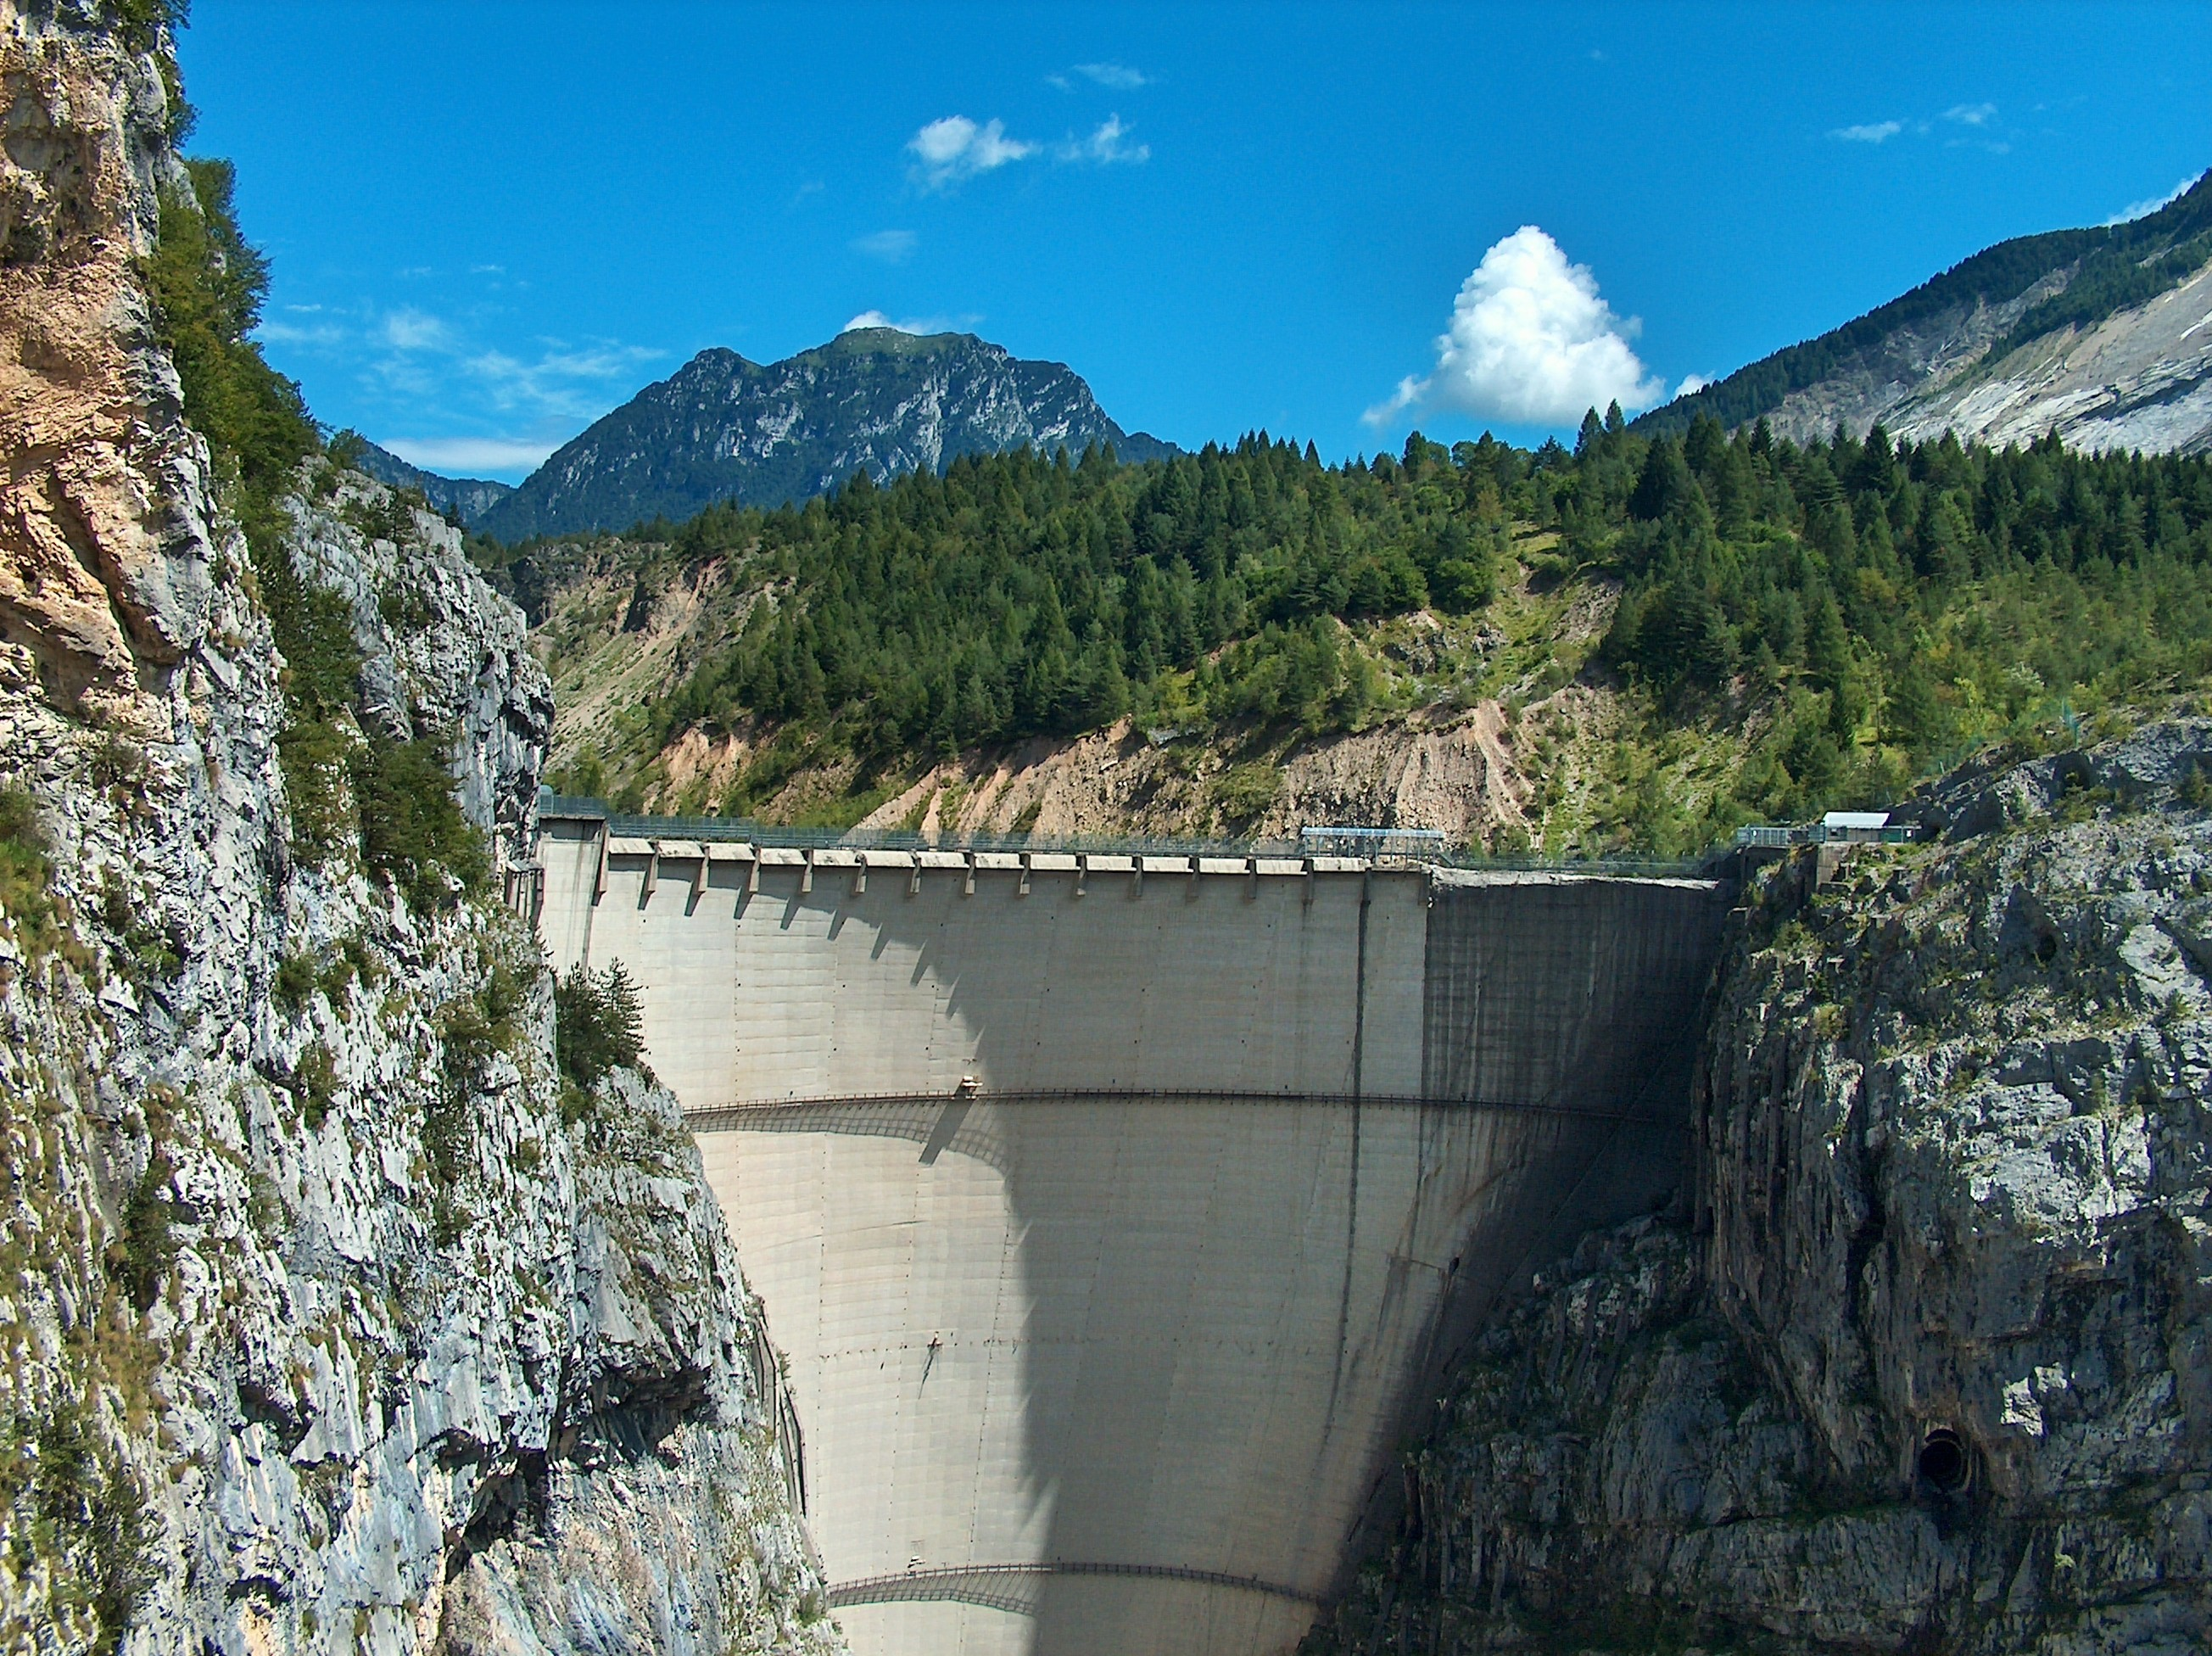 Mountains clouds concrete Italy vajont dam HD Wallpaper